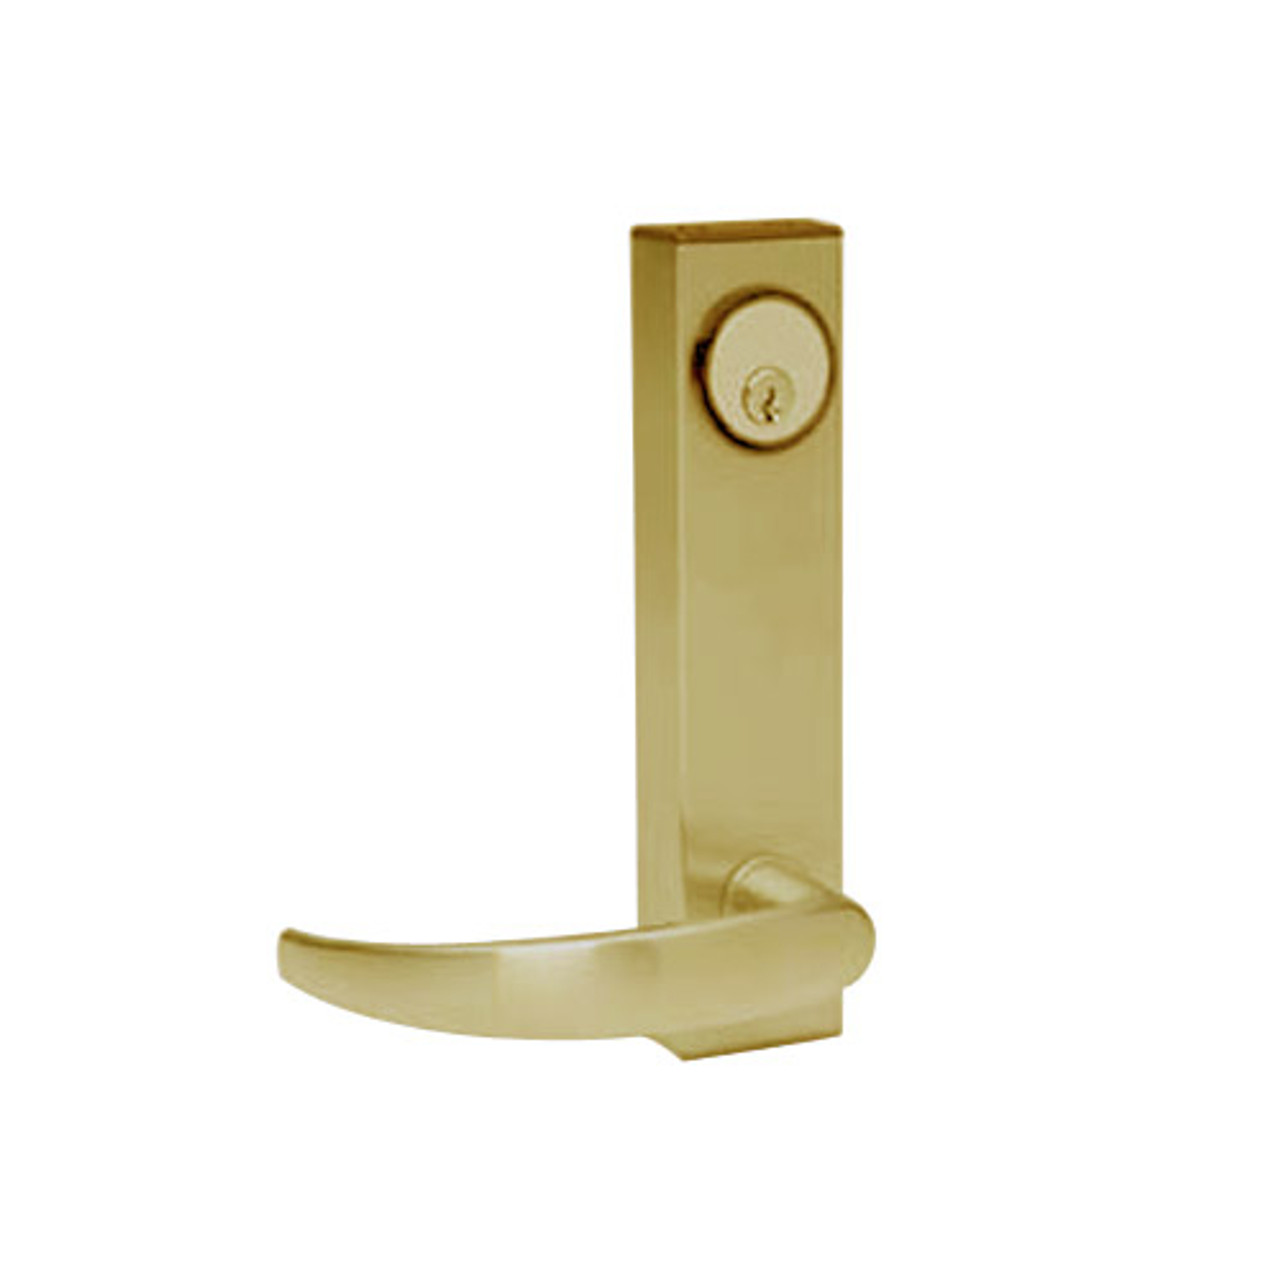 3080E-01-0-91-50 US4 Adams Rite Electrified Entry Trim with Curve Lever in Satin Brass Finish